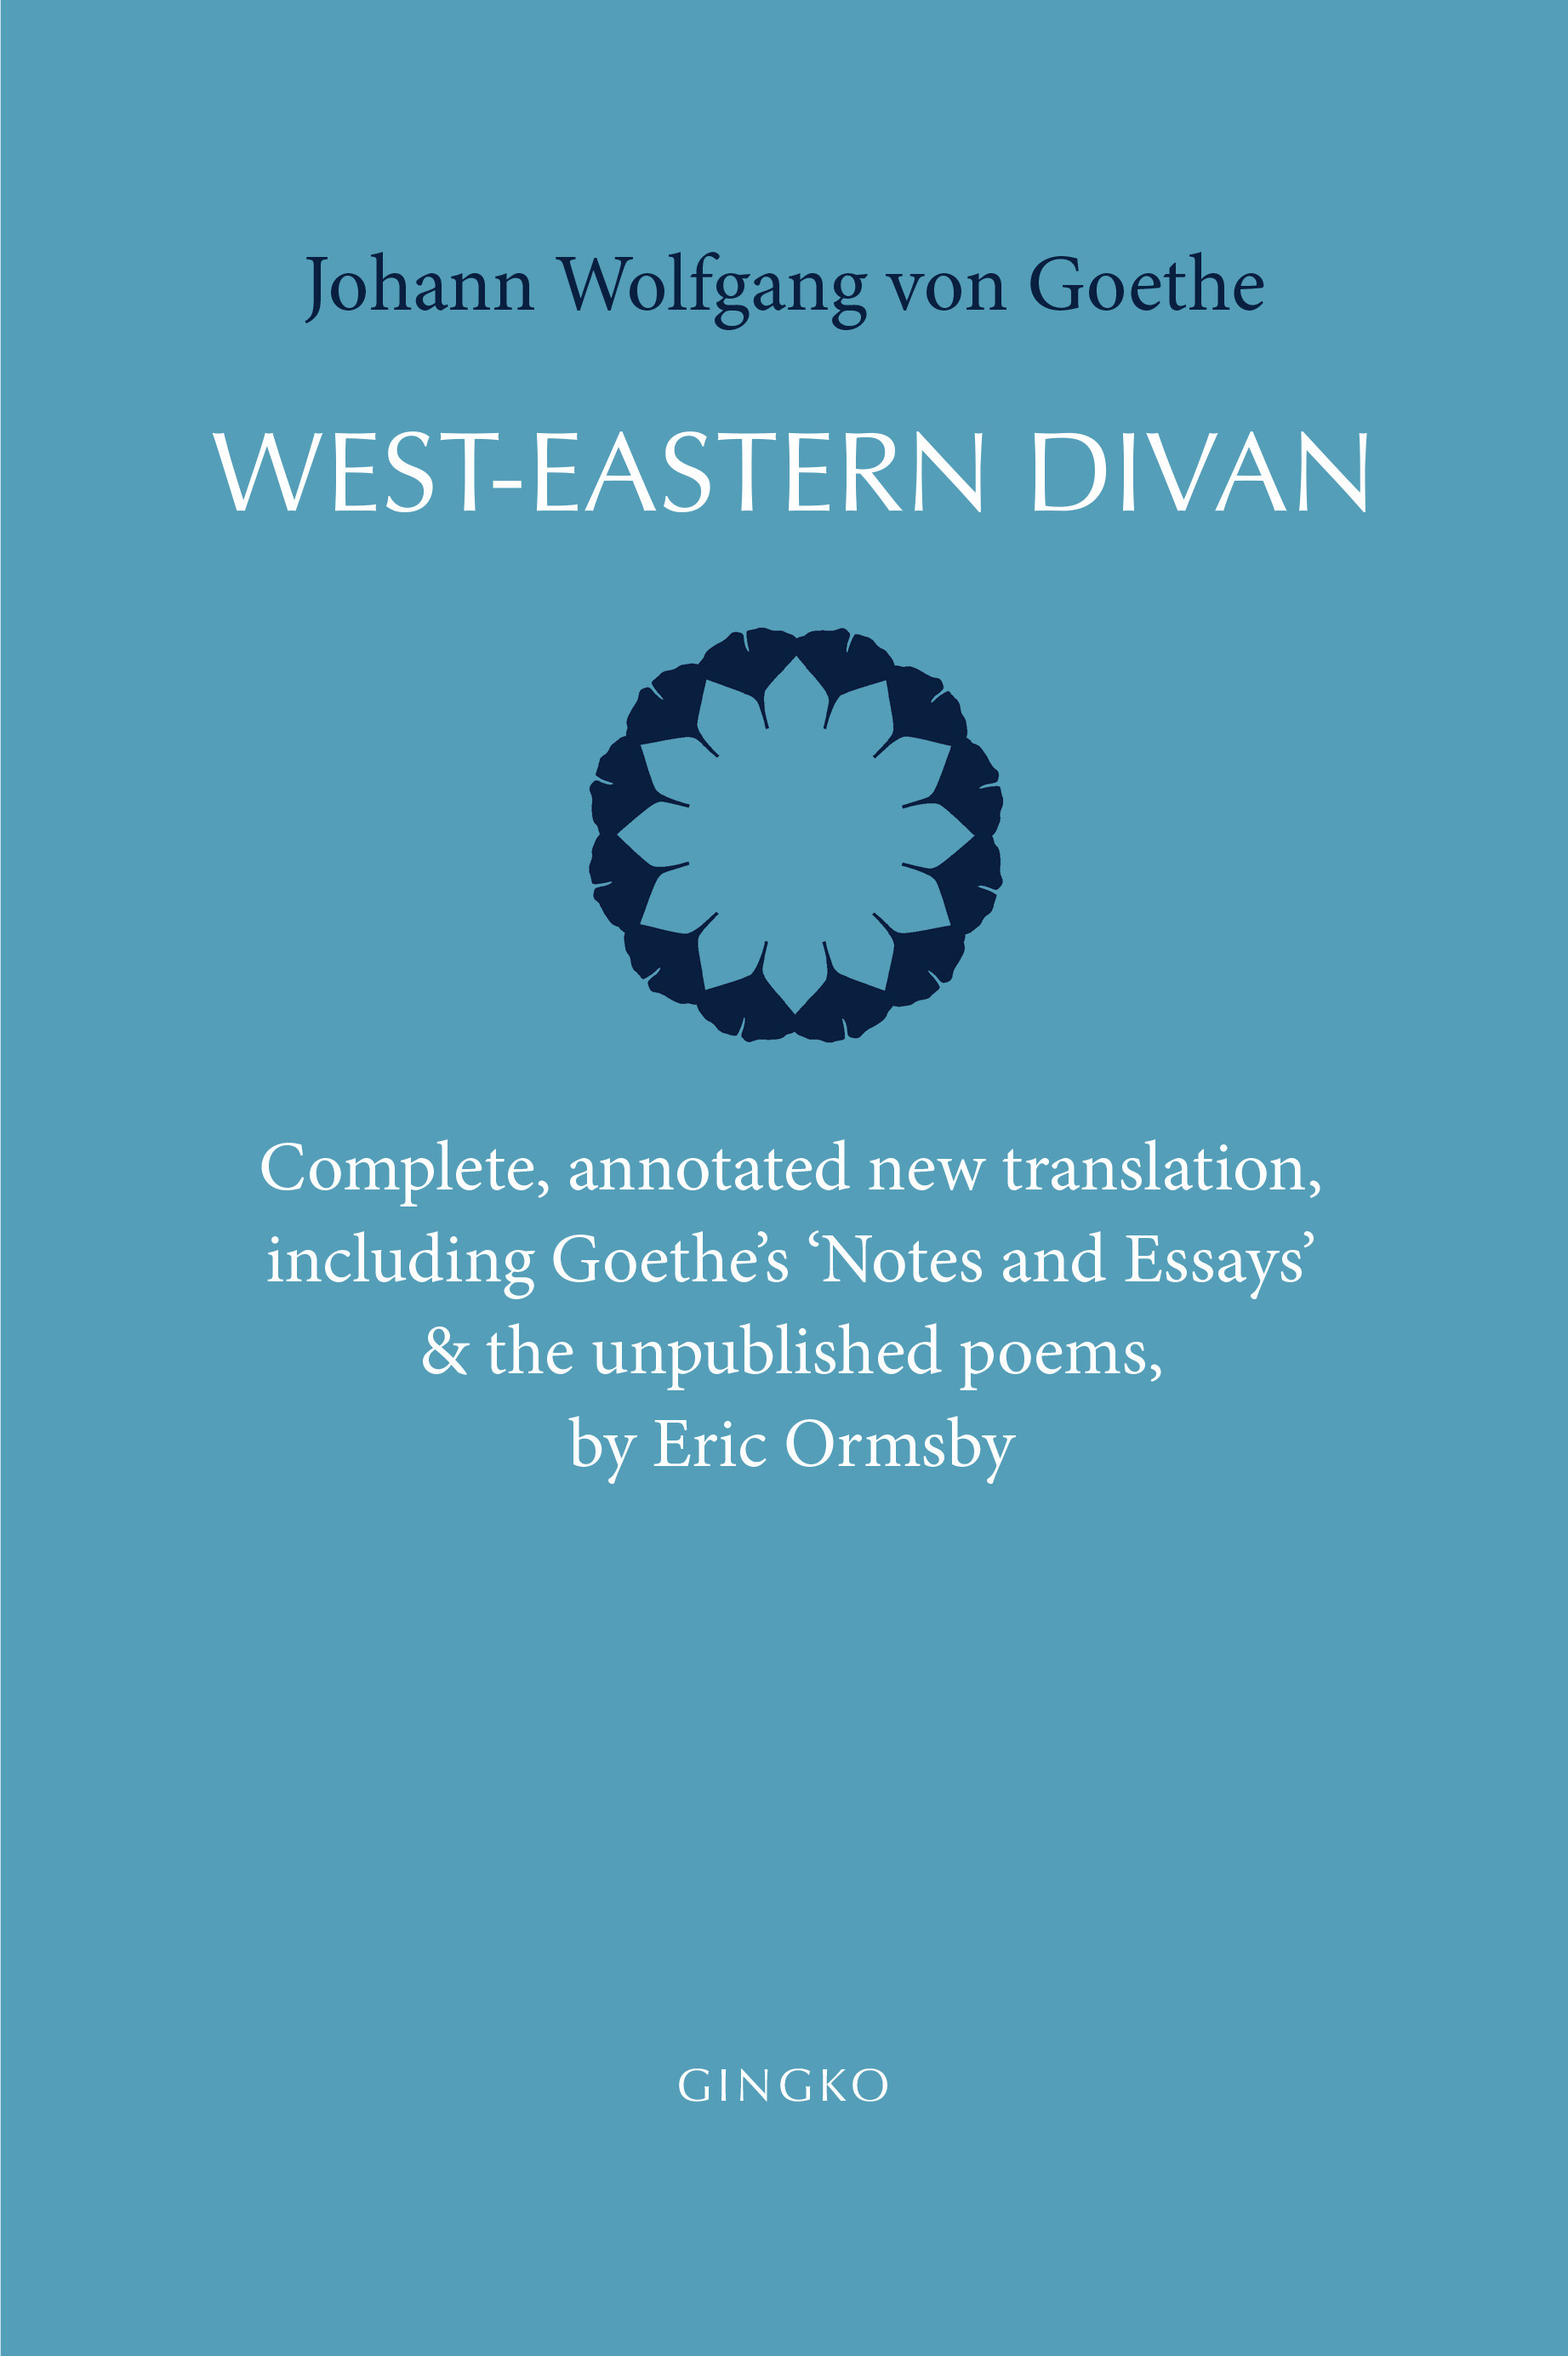 West-Eastern Divan: Complete, annotated new translation, including Goethe's